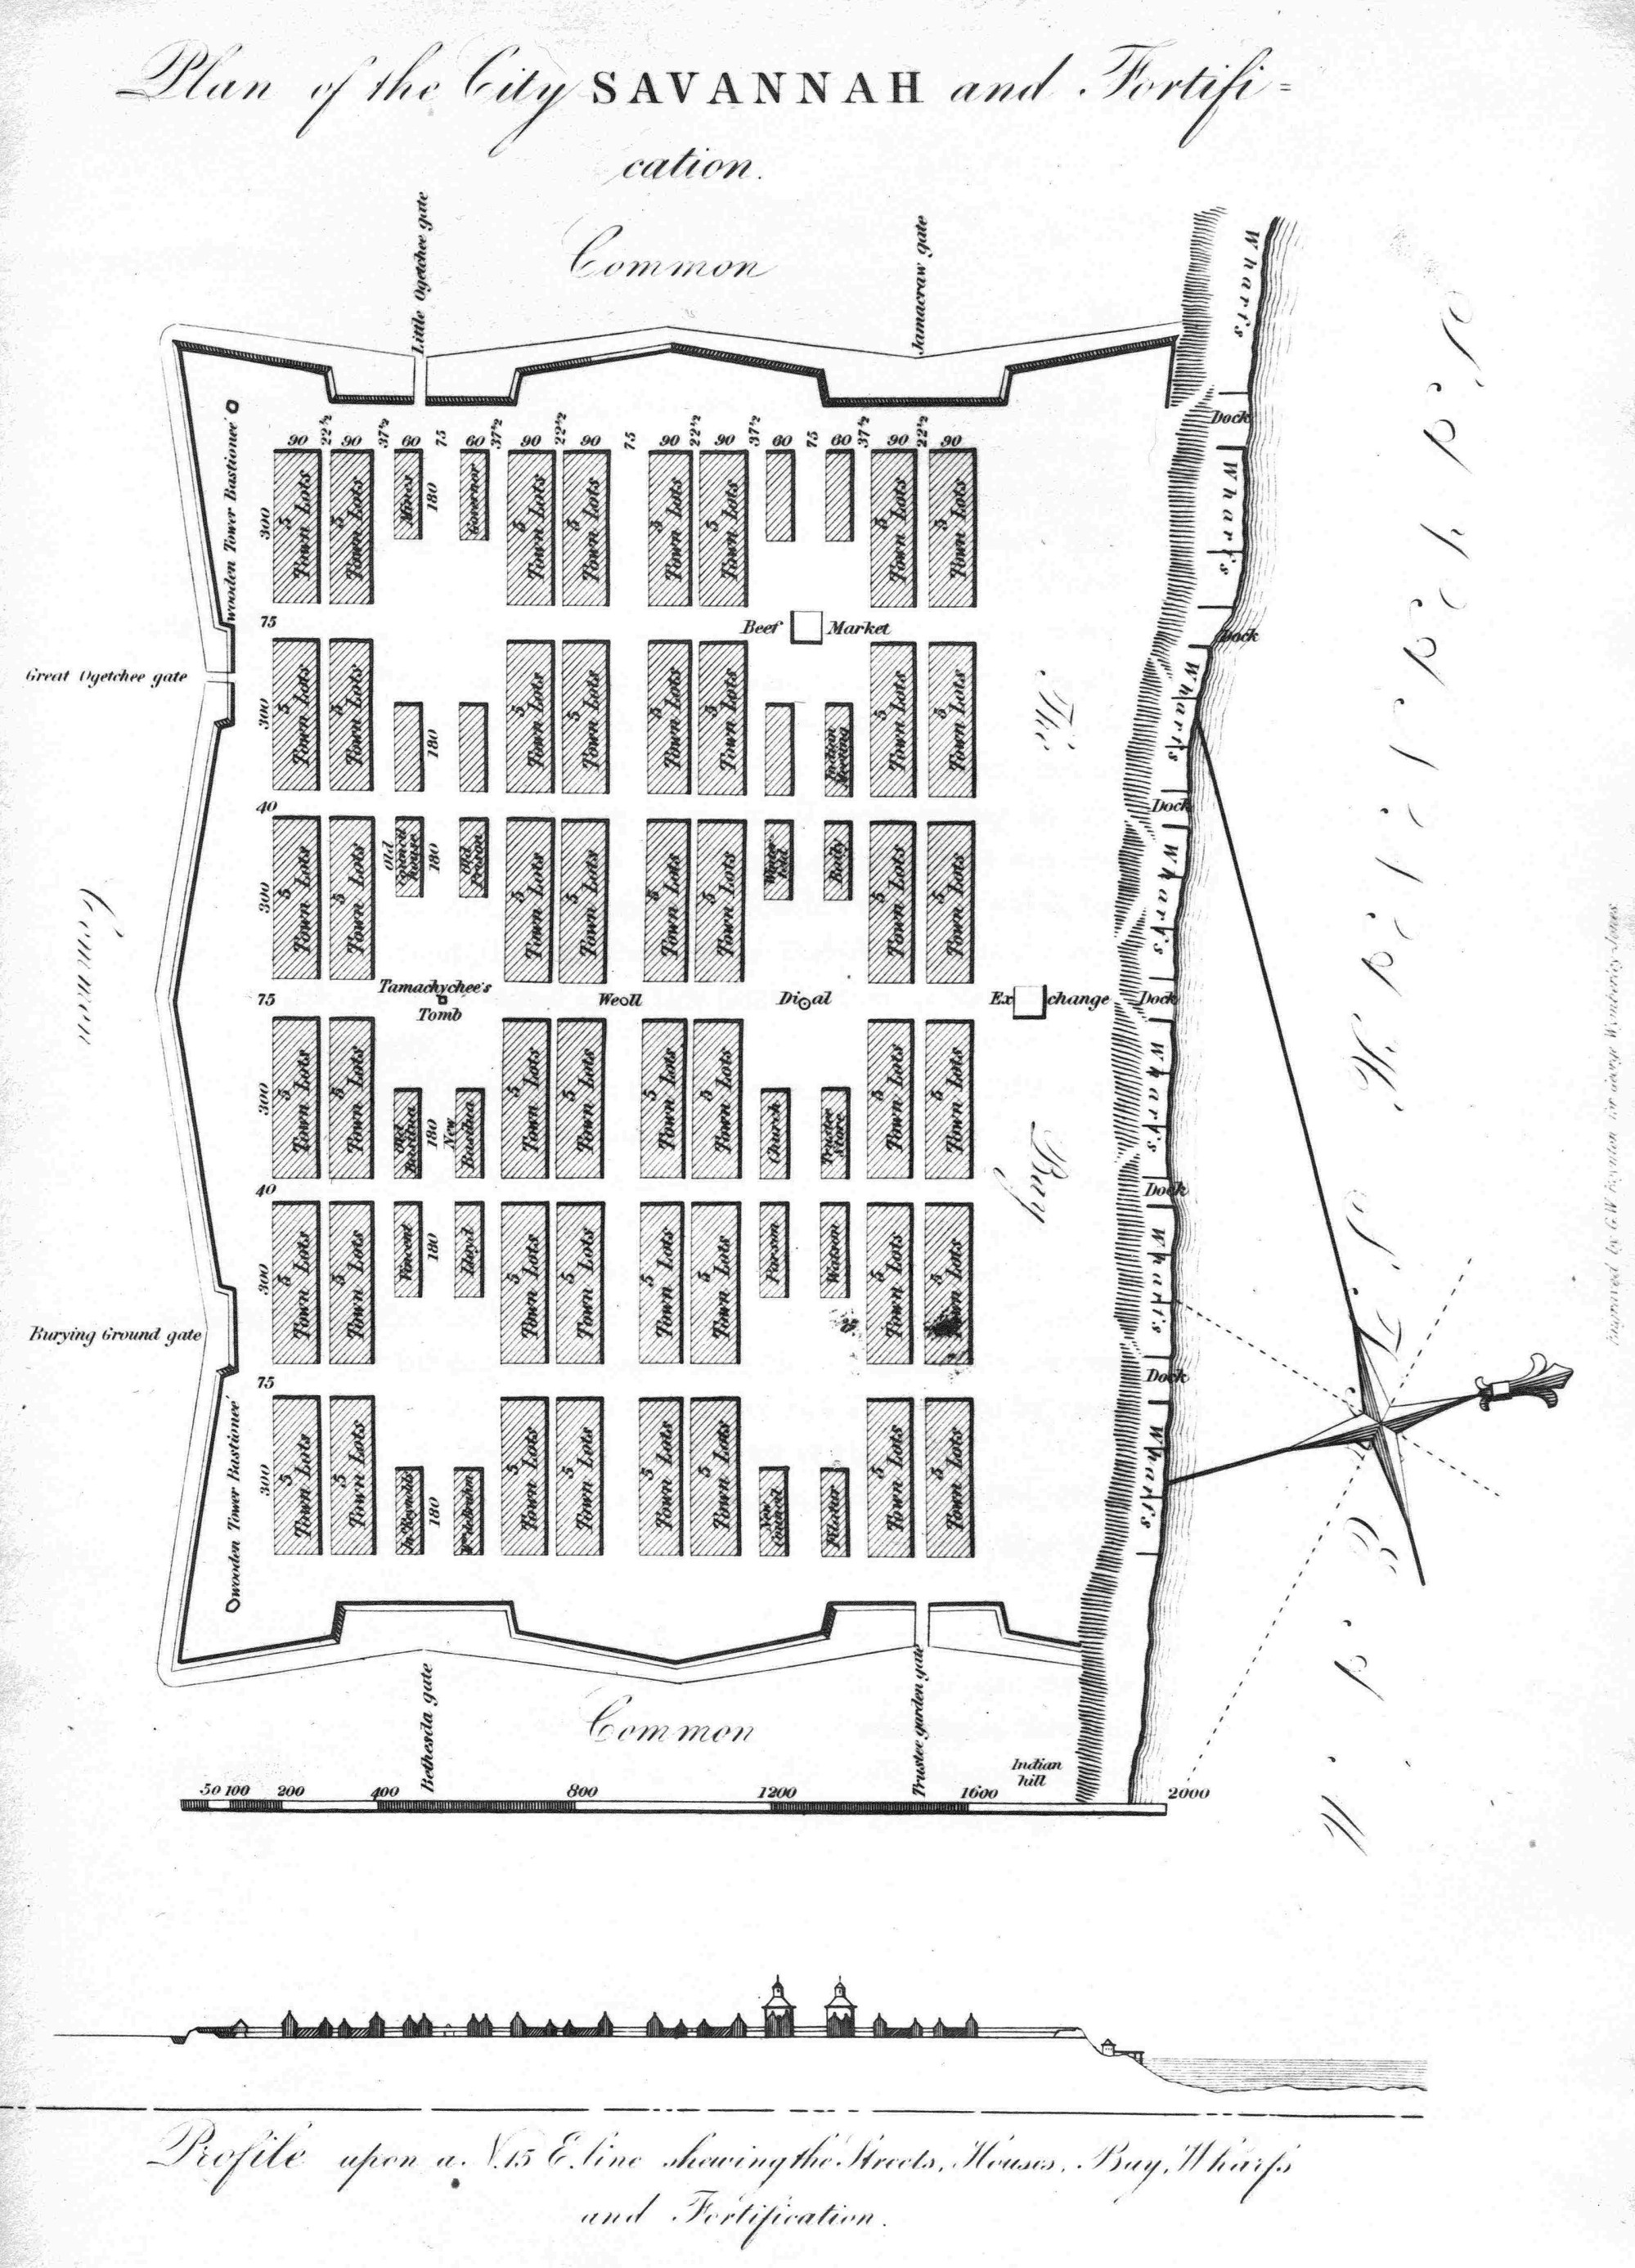 hight resolution of 1753 de brahm plan 1 a history of urban and architectural innovation in savannah dodge ram